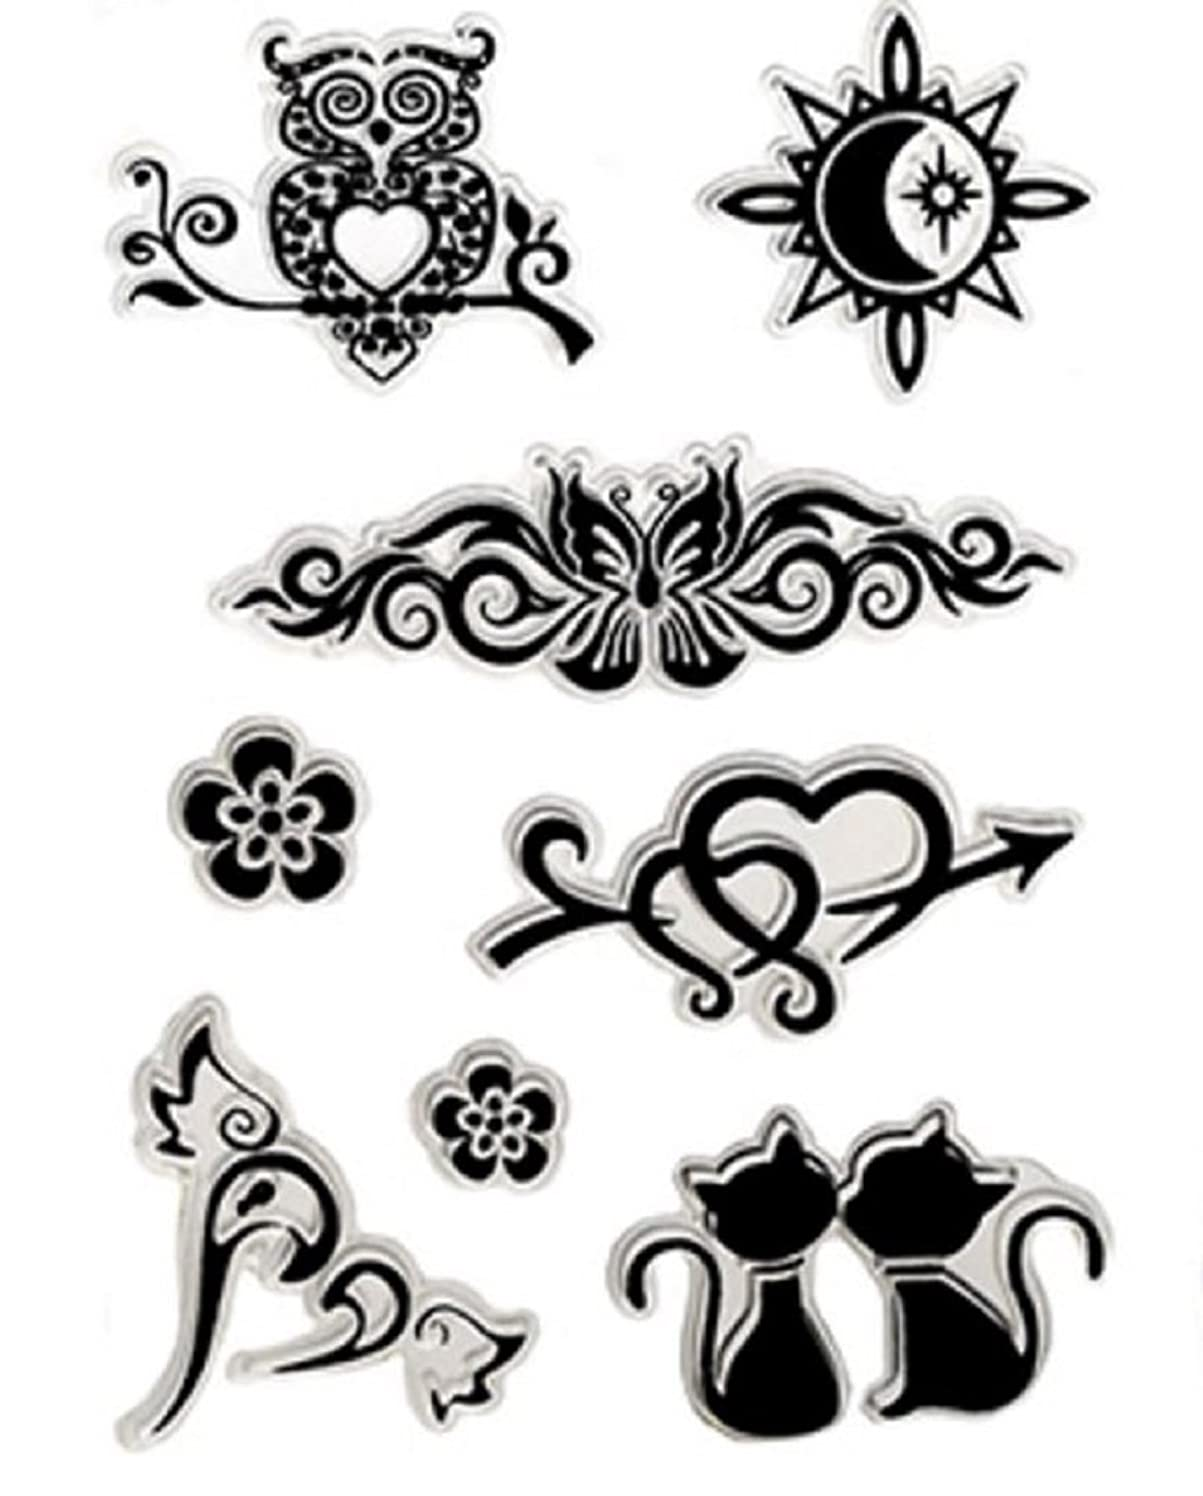 Forever in Time Clear Cling Rubber Stamp Ink Art Owl Sun Kittens Love Heart